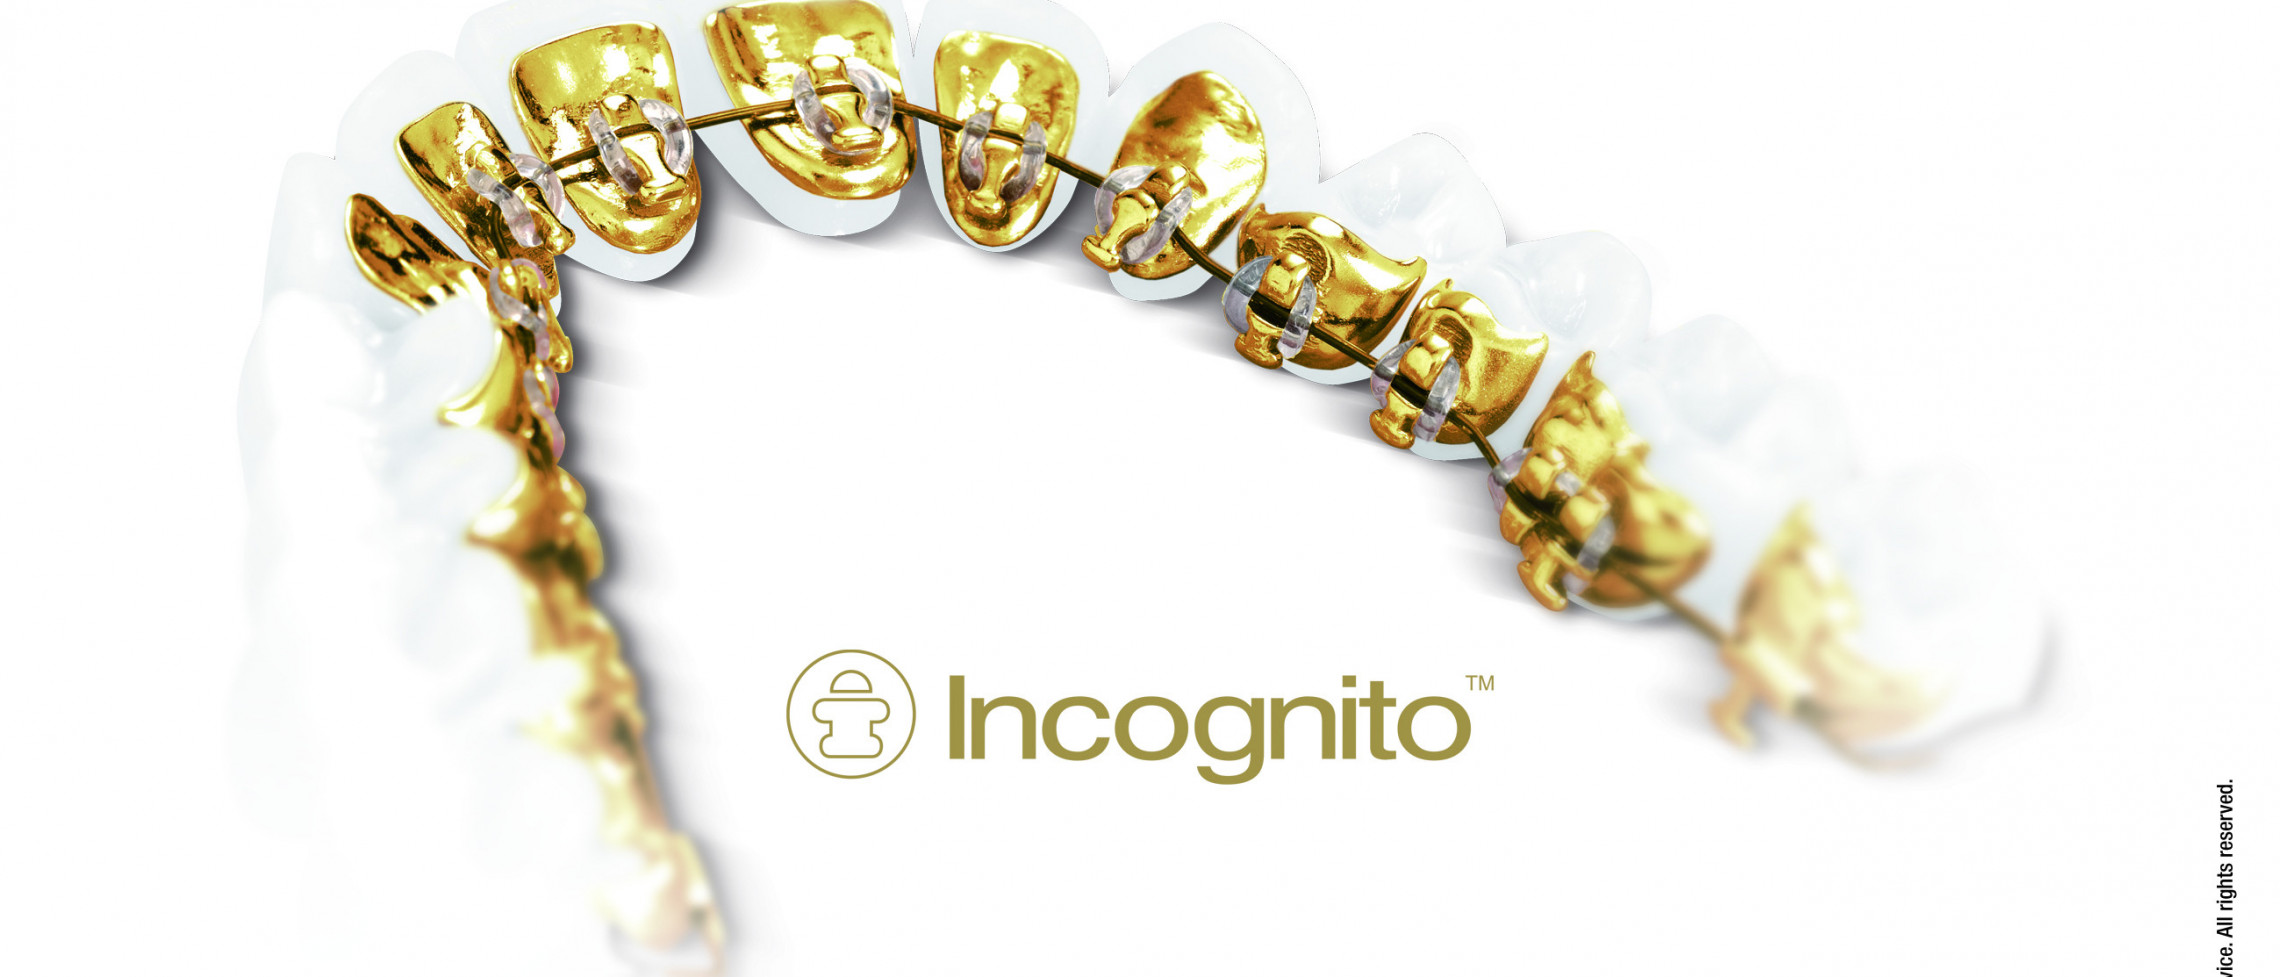 5 Frequently asked questions about Incognito Braces